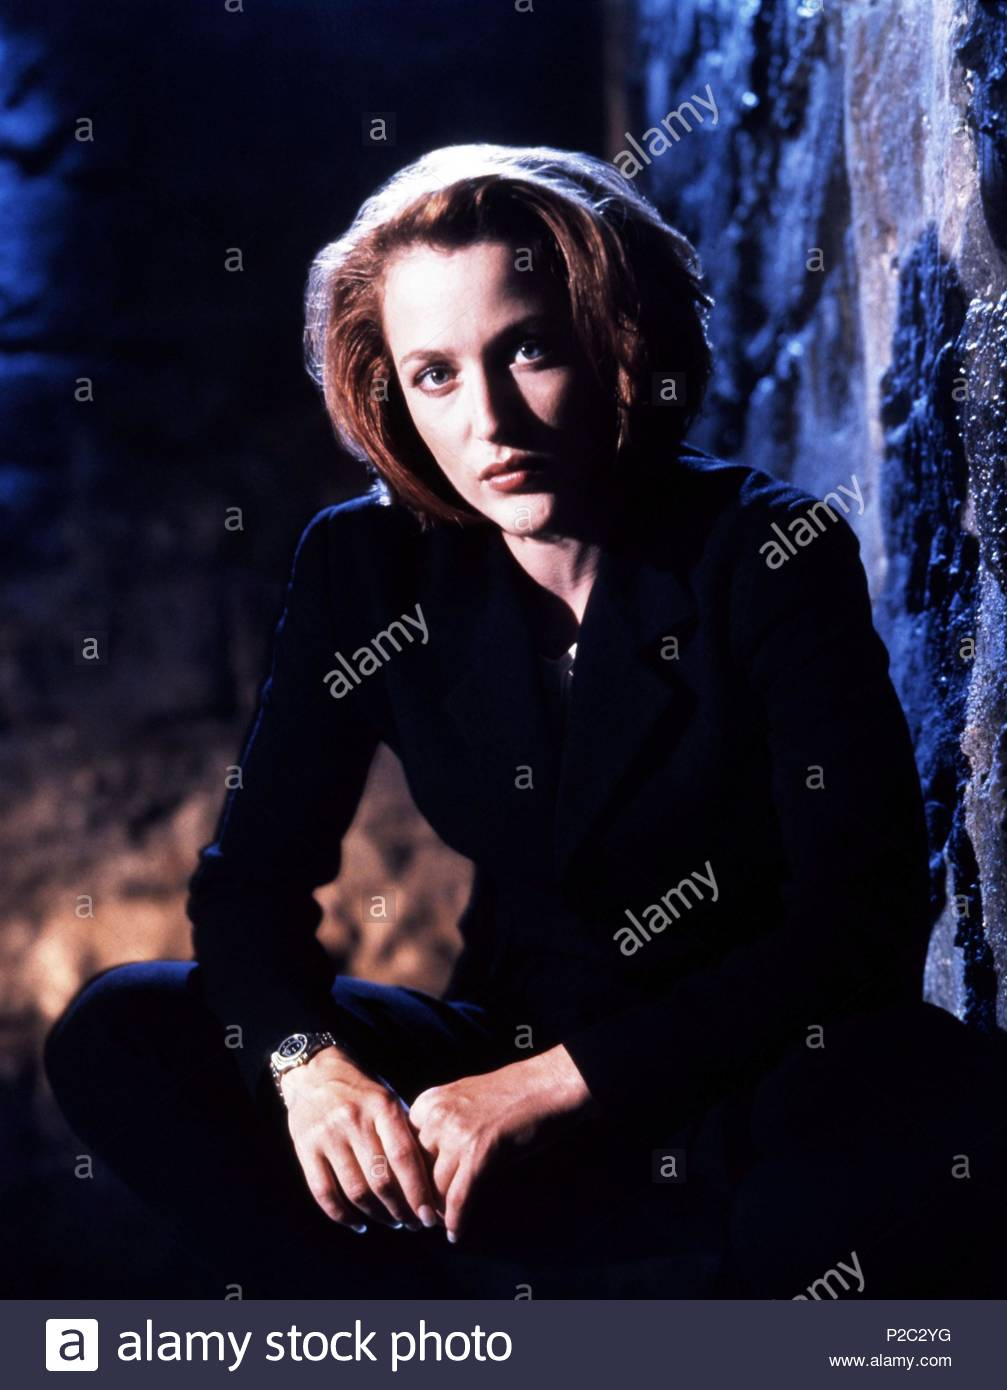 Original Film Title: THE X FILES.  English Title: THE X FILES.  Film Director: CHRIS CARTER; ROB BOWMAN; DAVID NUTTER.  Year: 1993.  Stars: GILLIAN ANDERSON. Credit: FOX FILMS / SELIGER, MARK / Album - Stock Image